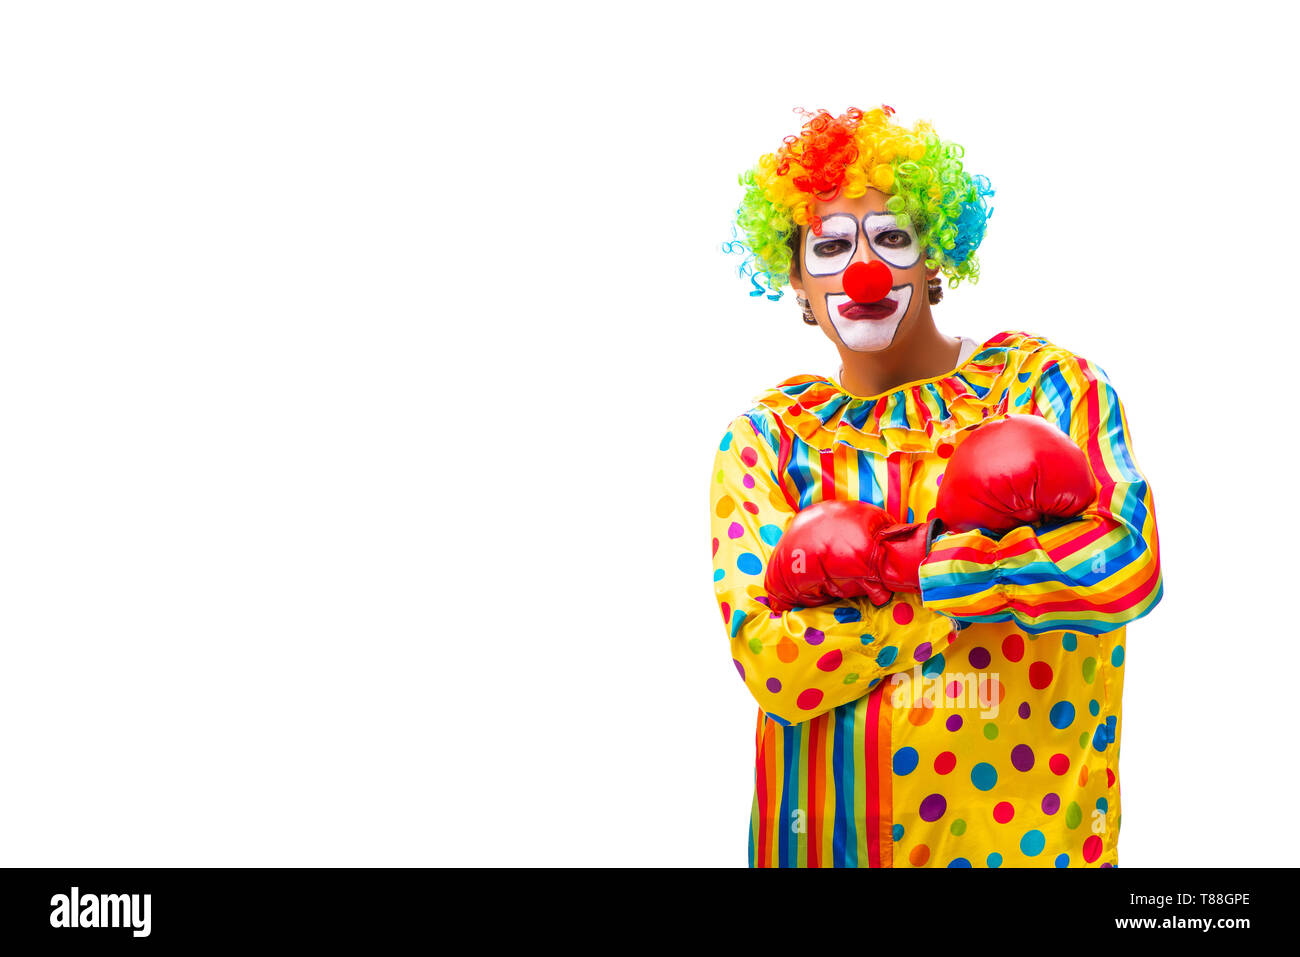 Male clown isolated on white - Stock Image